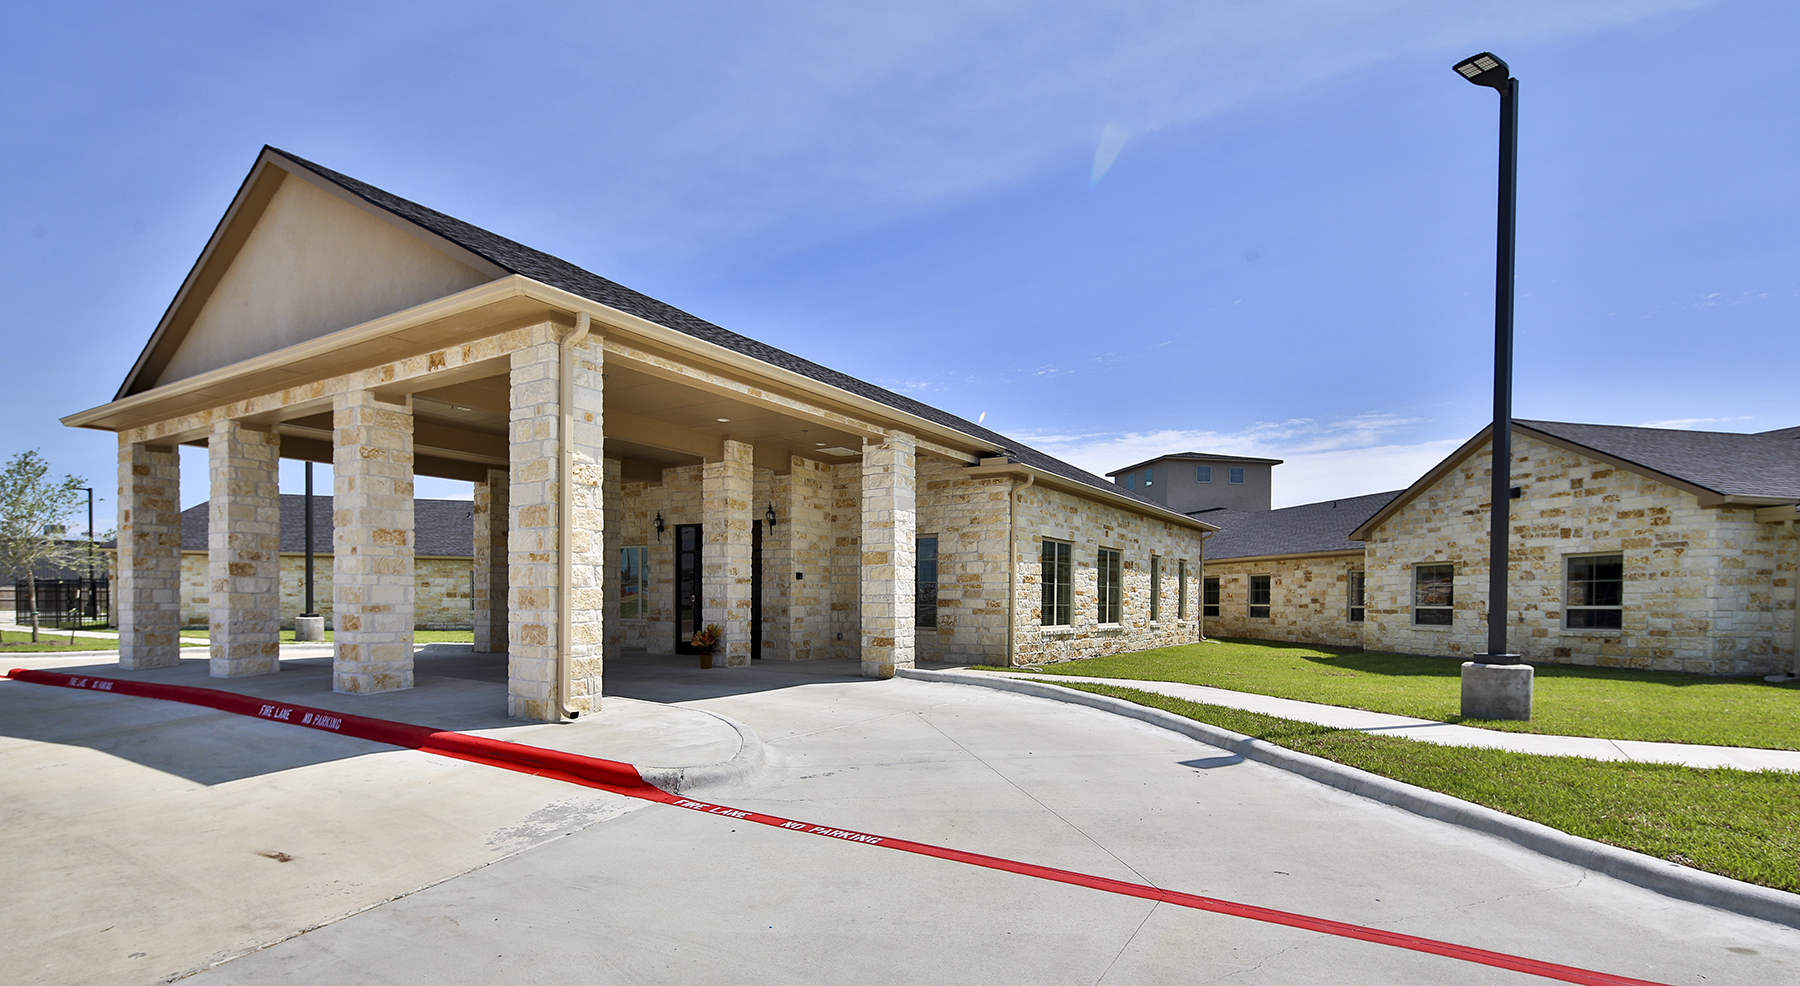 Welcoming our newest facility, Windsor Calallen